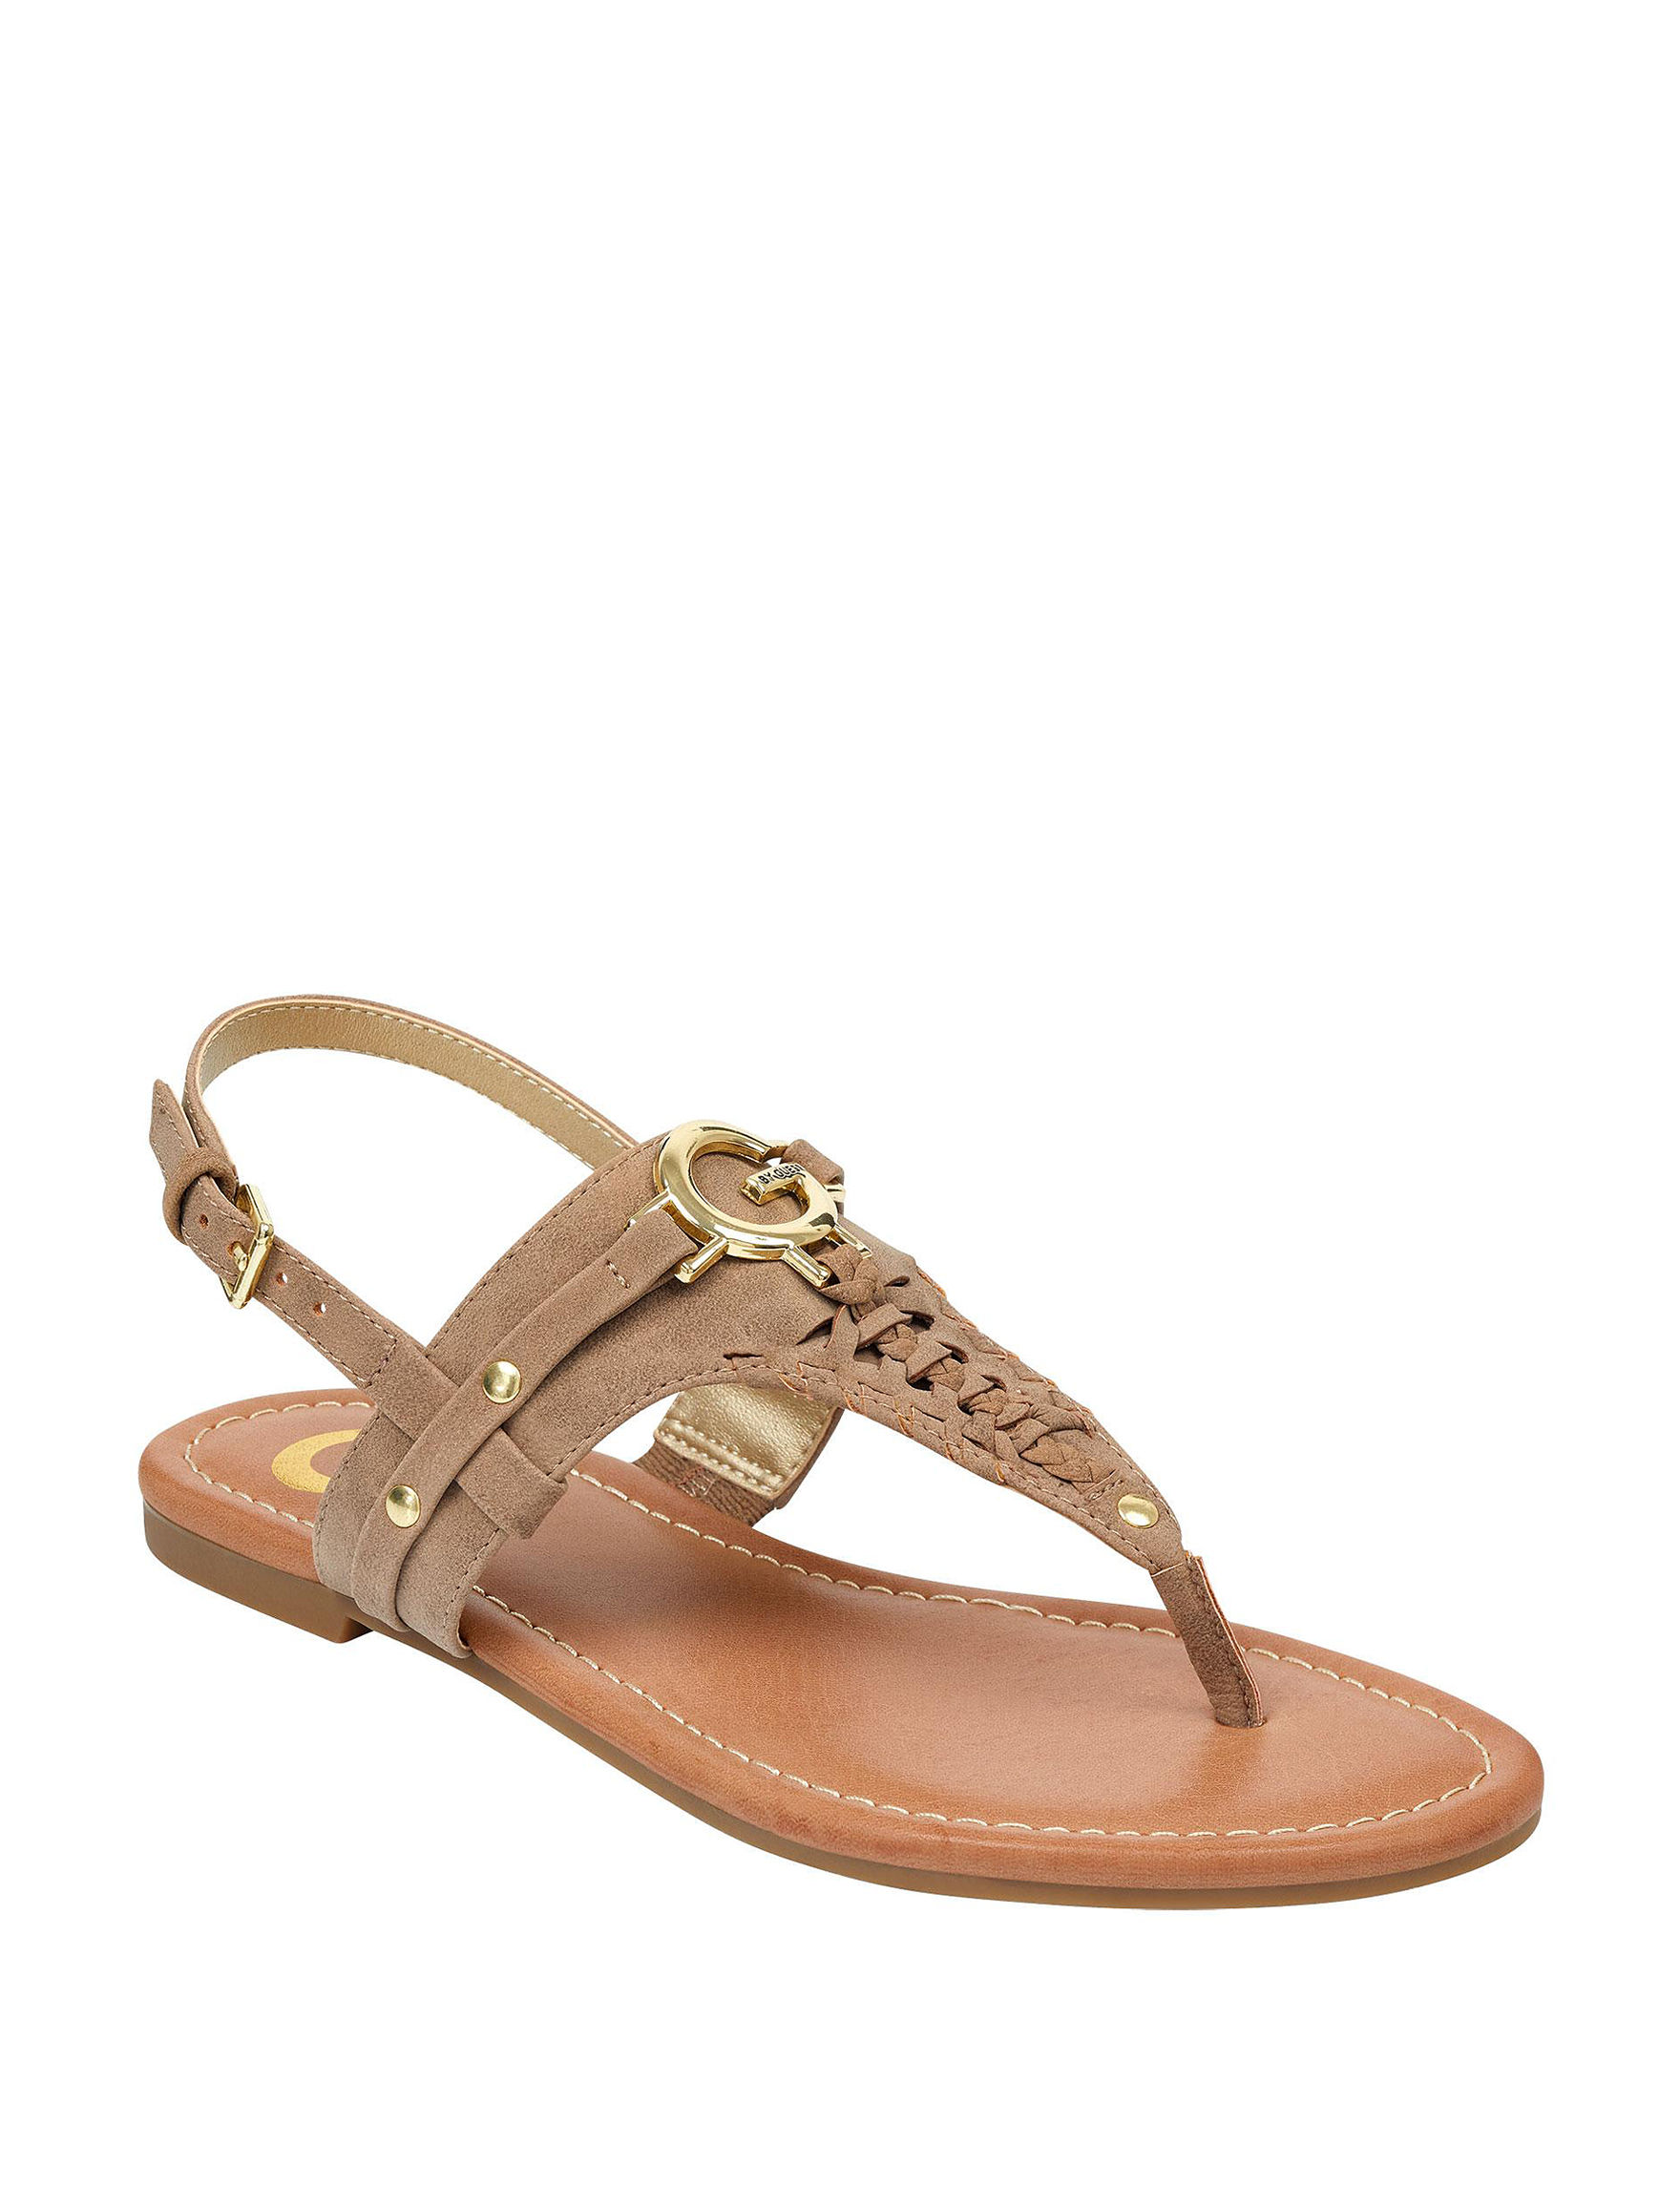 G by Guess Mushroom Flat Sandals